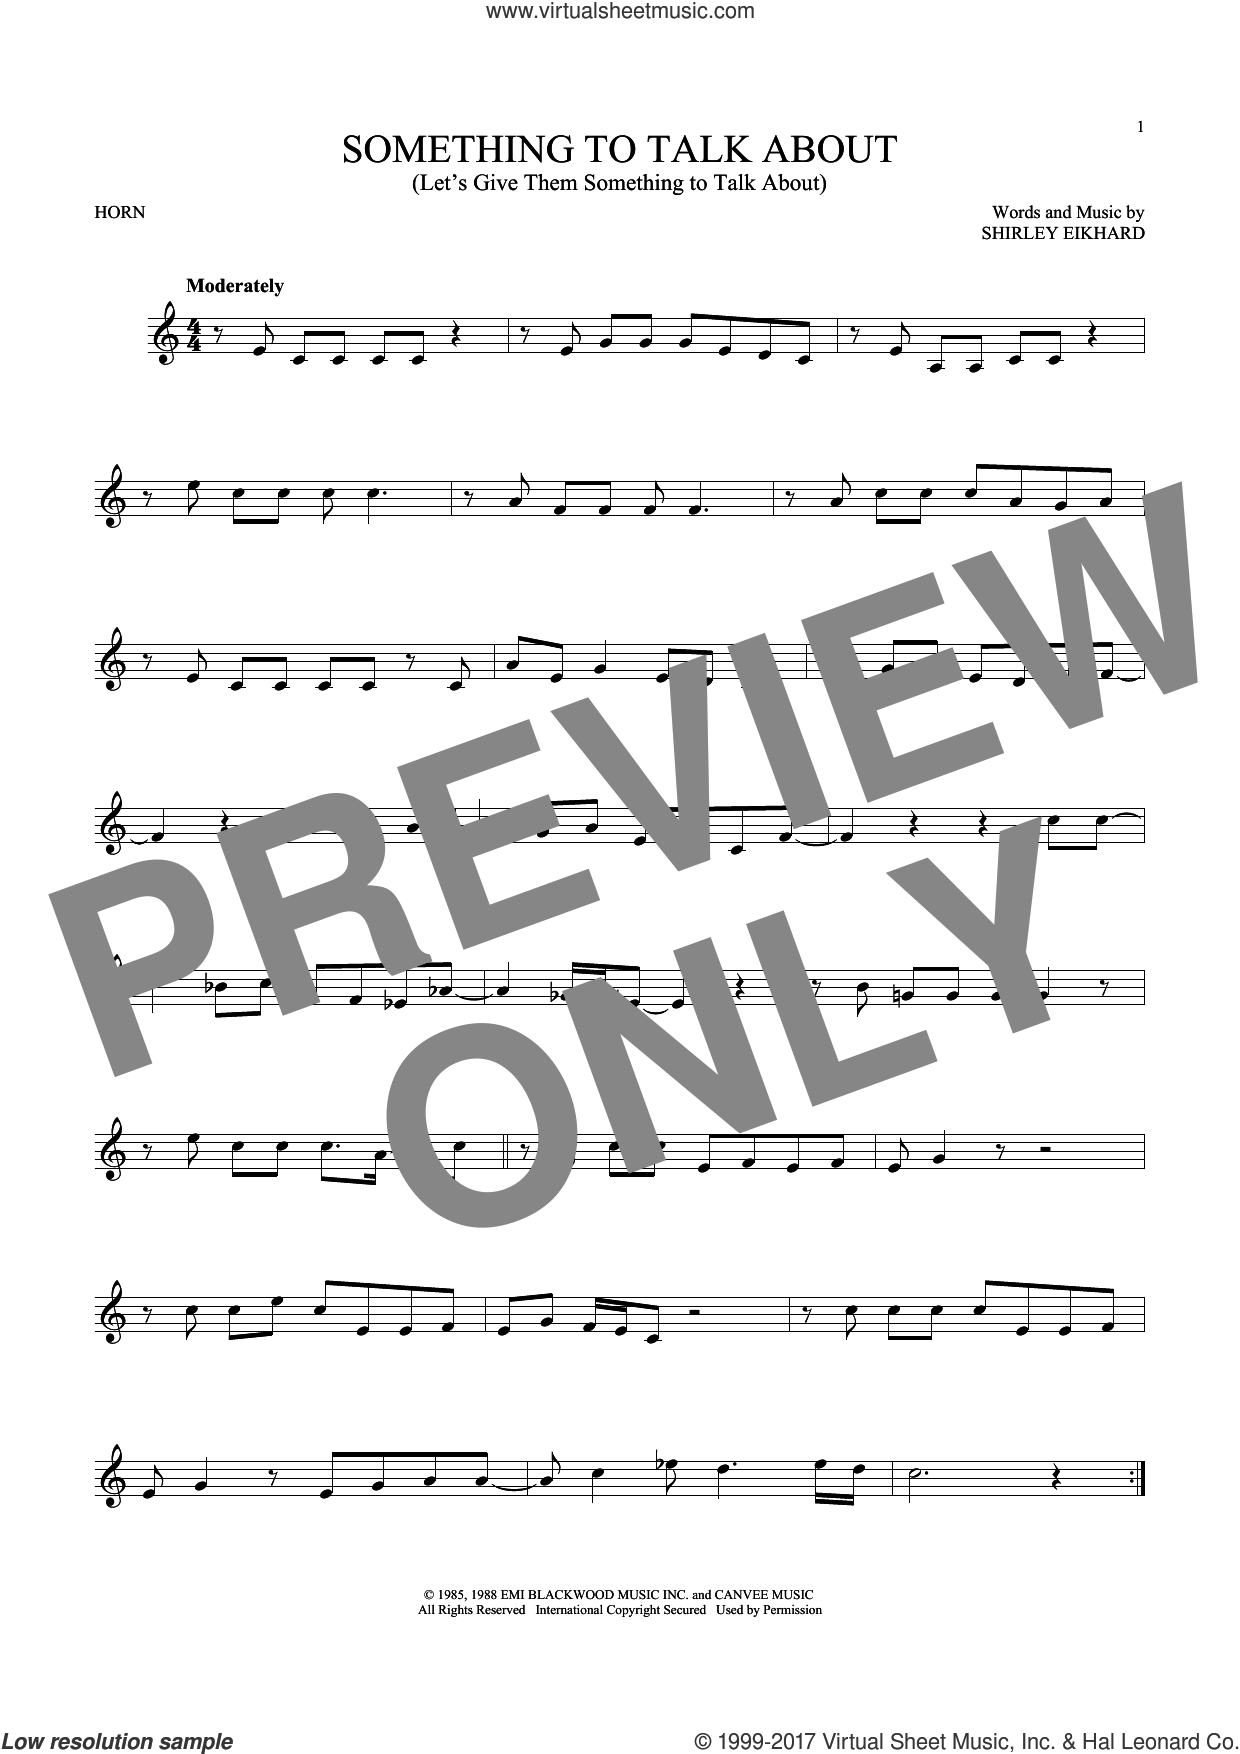 Something To Talk About (Let's Give Them Something To Talk About) sheet music for horn solo by Bonnie Raitt and Shirley Eikhard, intermediate skill level